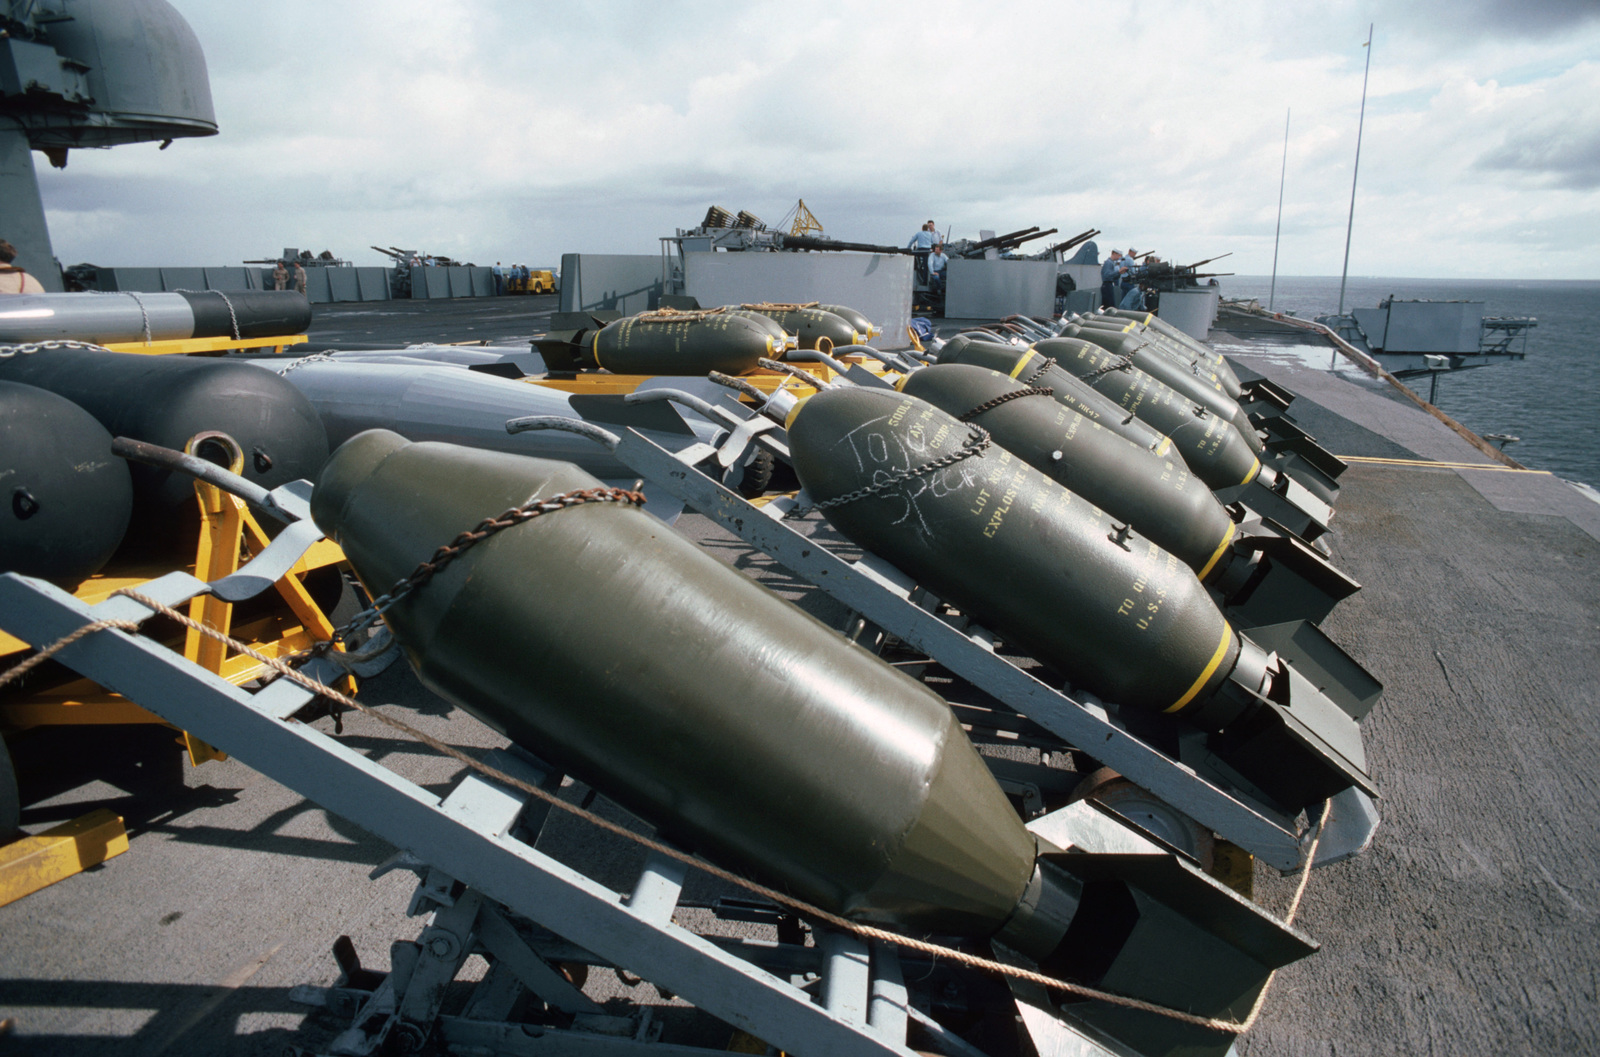 A line of World War II-era bombs are staged on the flight